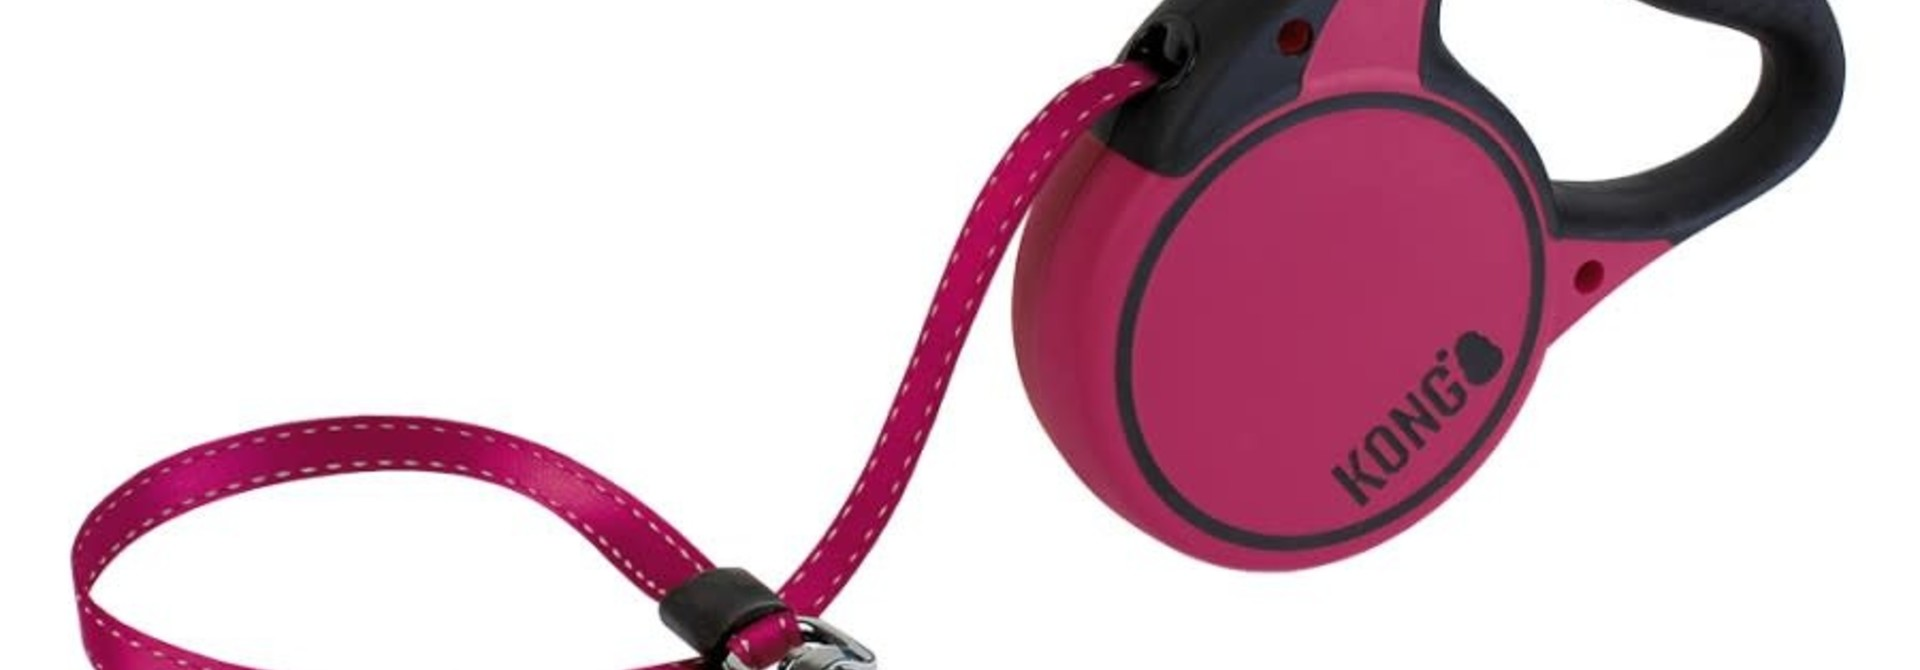 Terrain Retractable Leash- Medium - Fuchsia